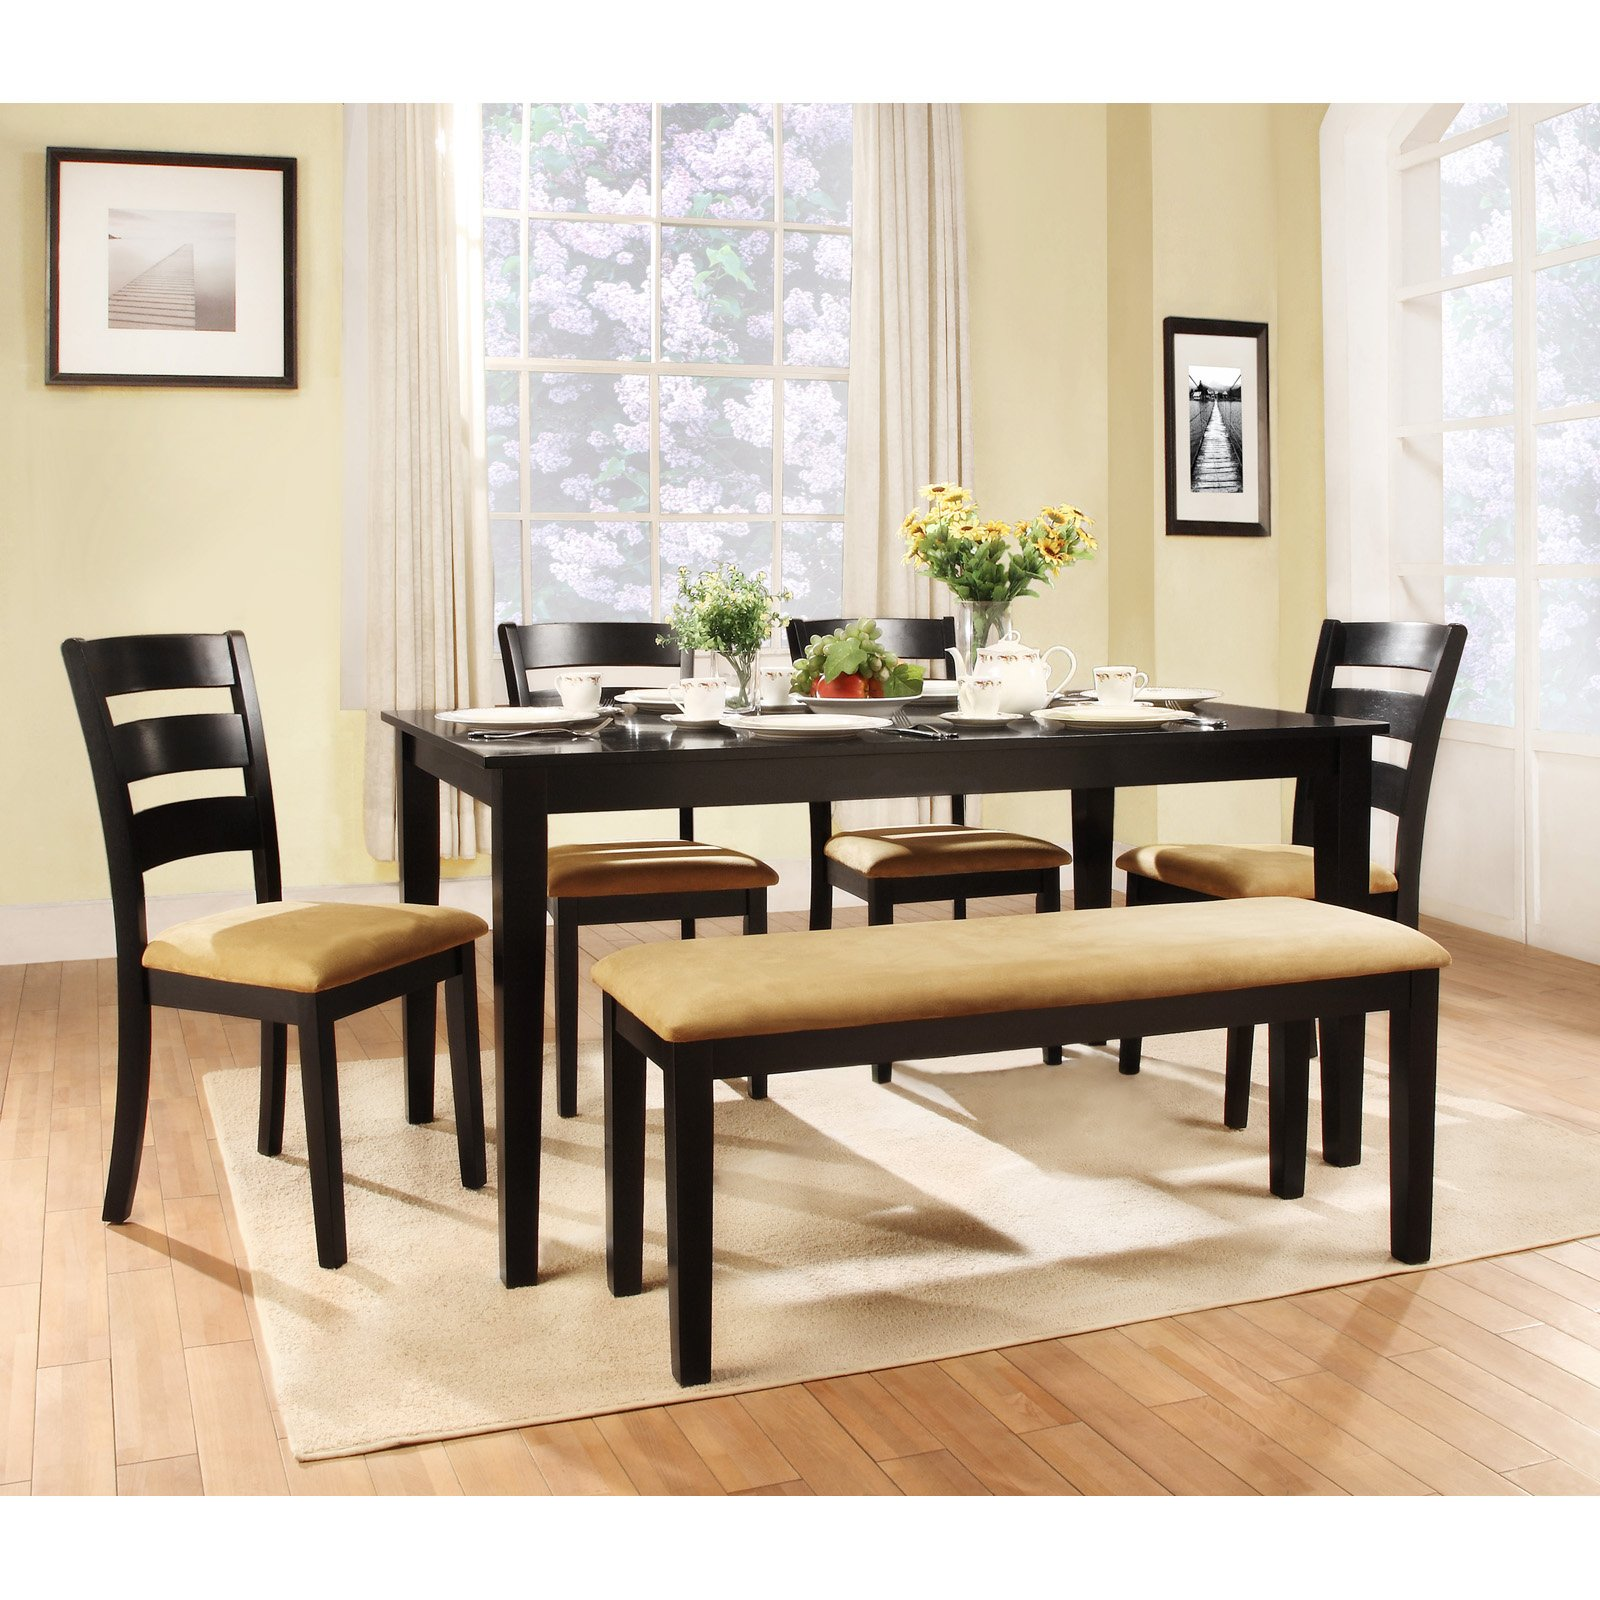 Modern bench style dining table set ideas homesfeed for Table and bench set